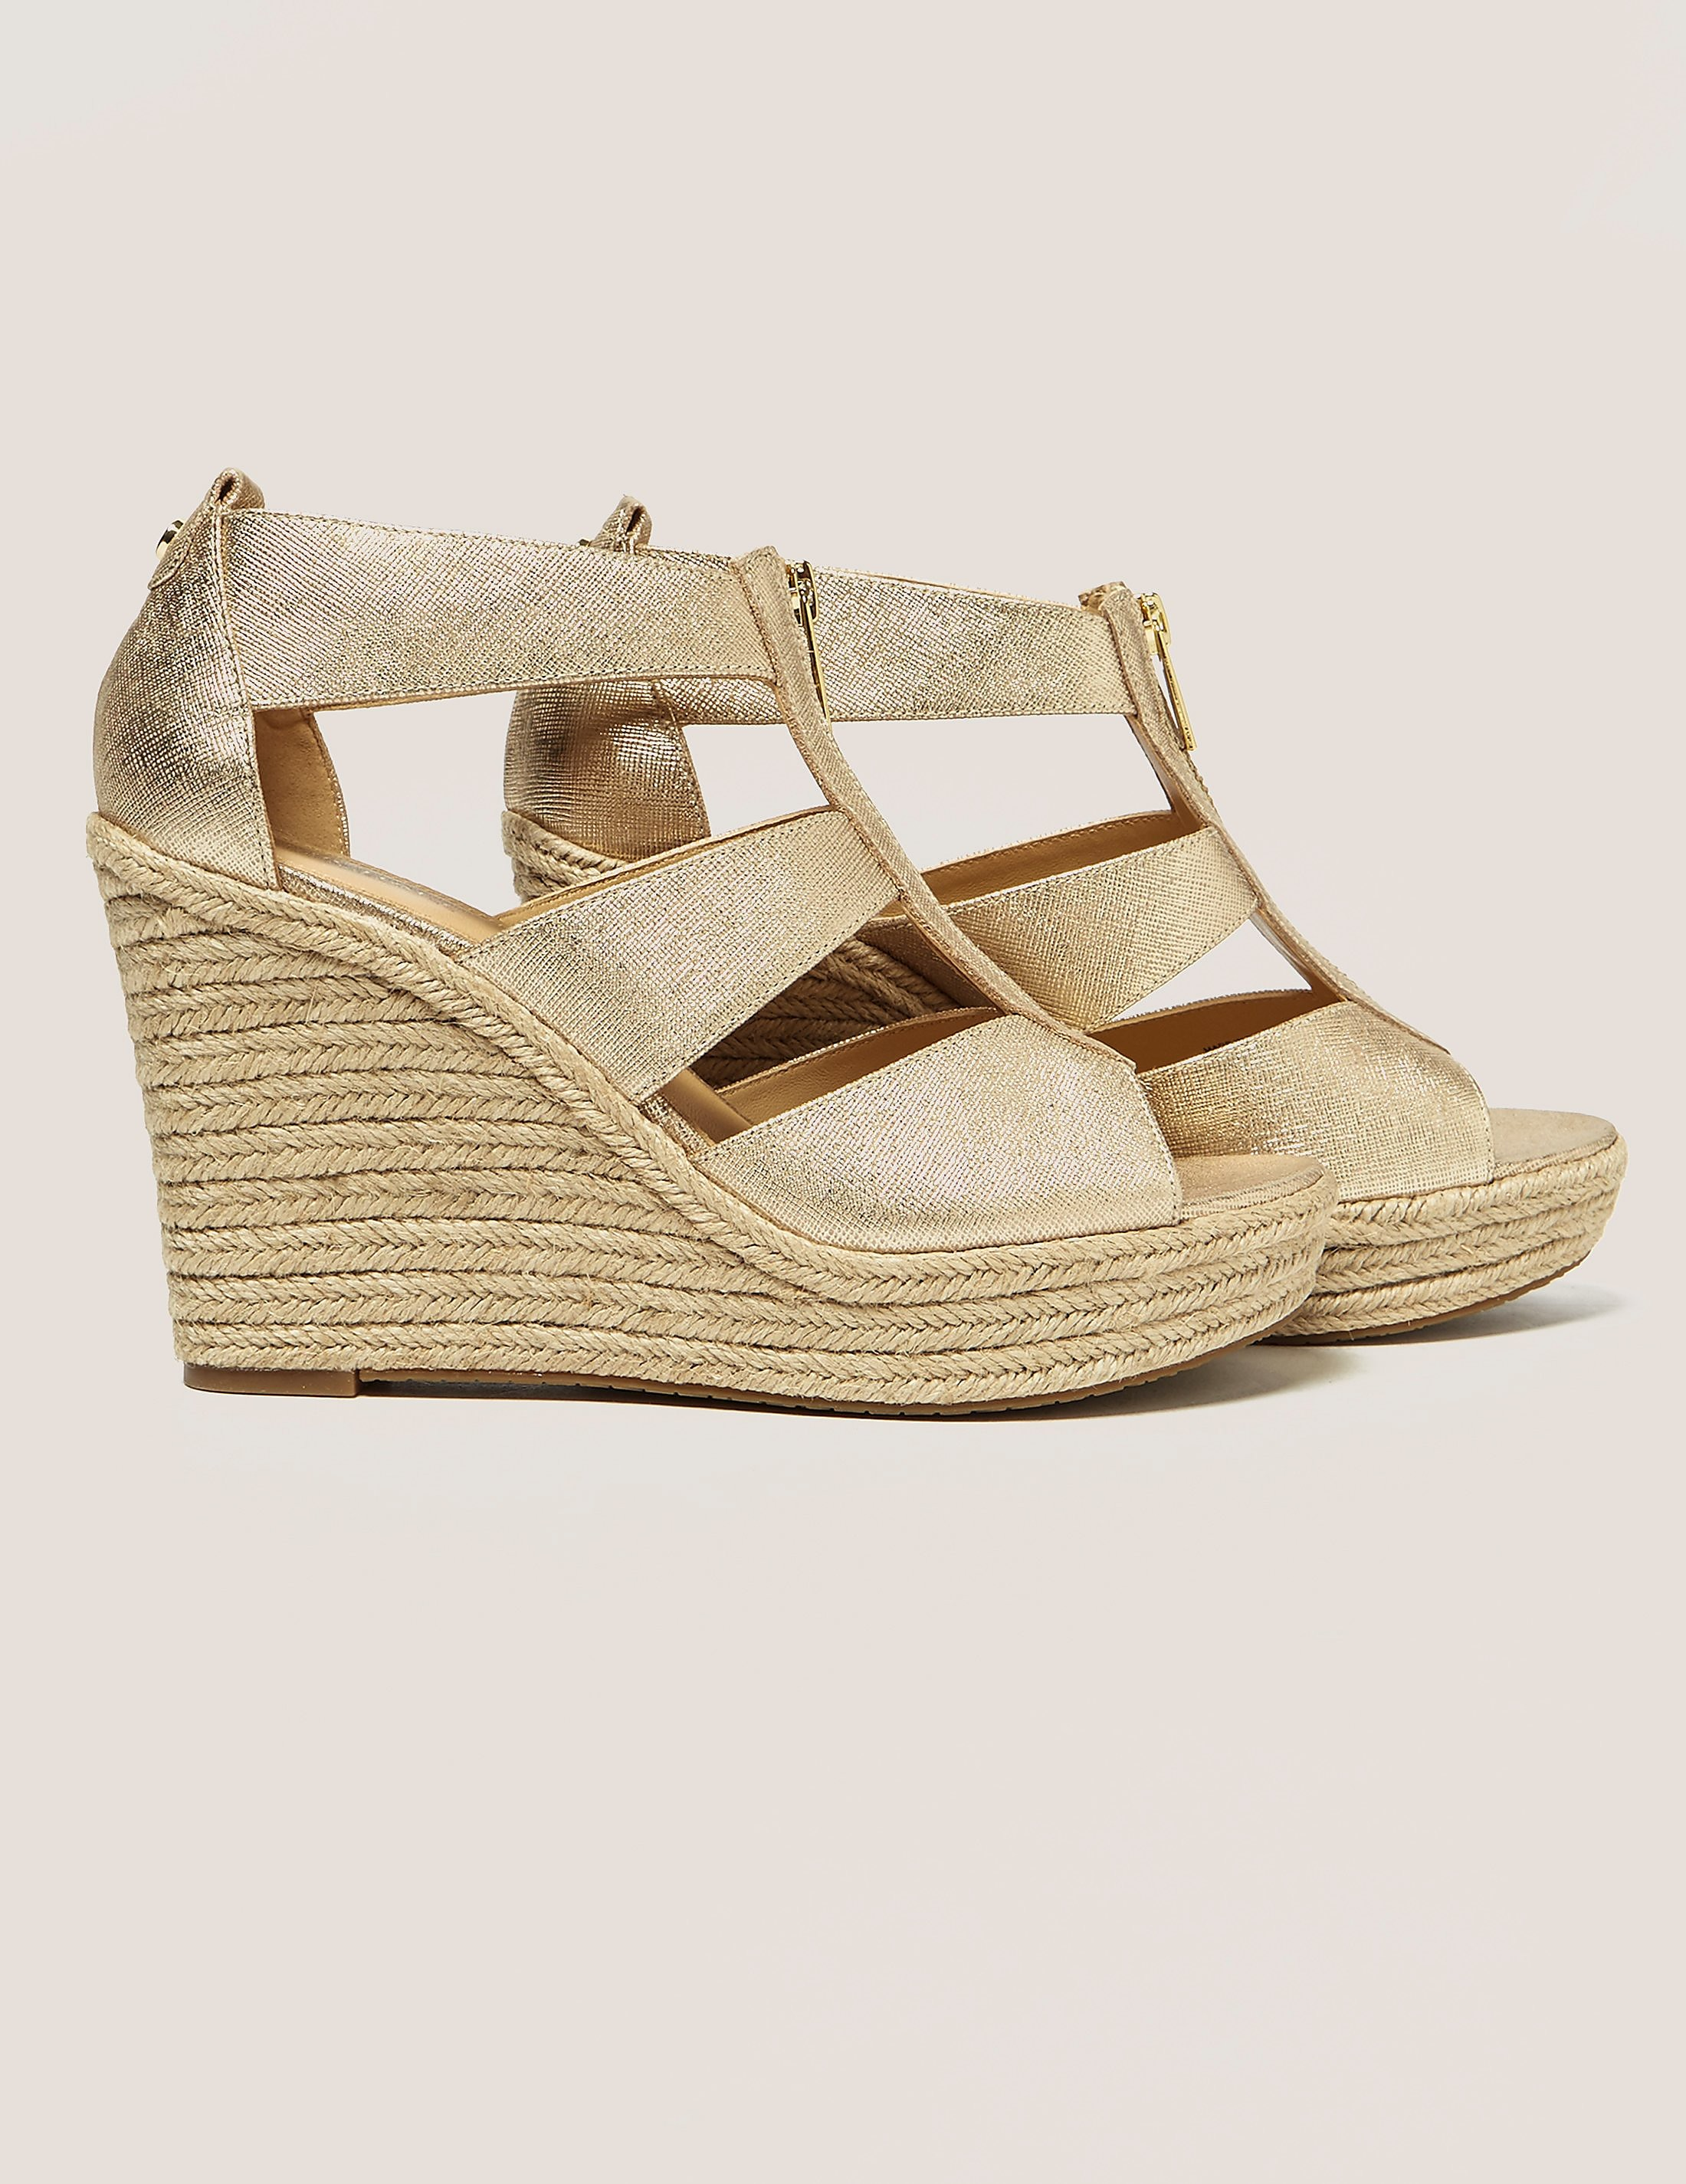 Michael Kors Damita Wedge Sandals